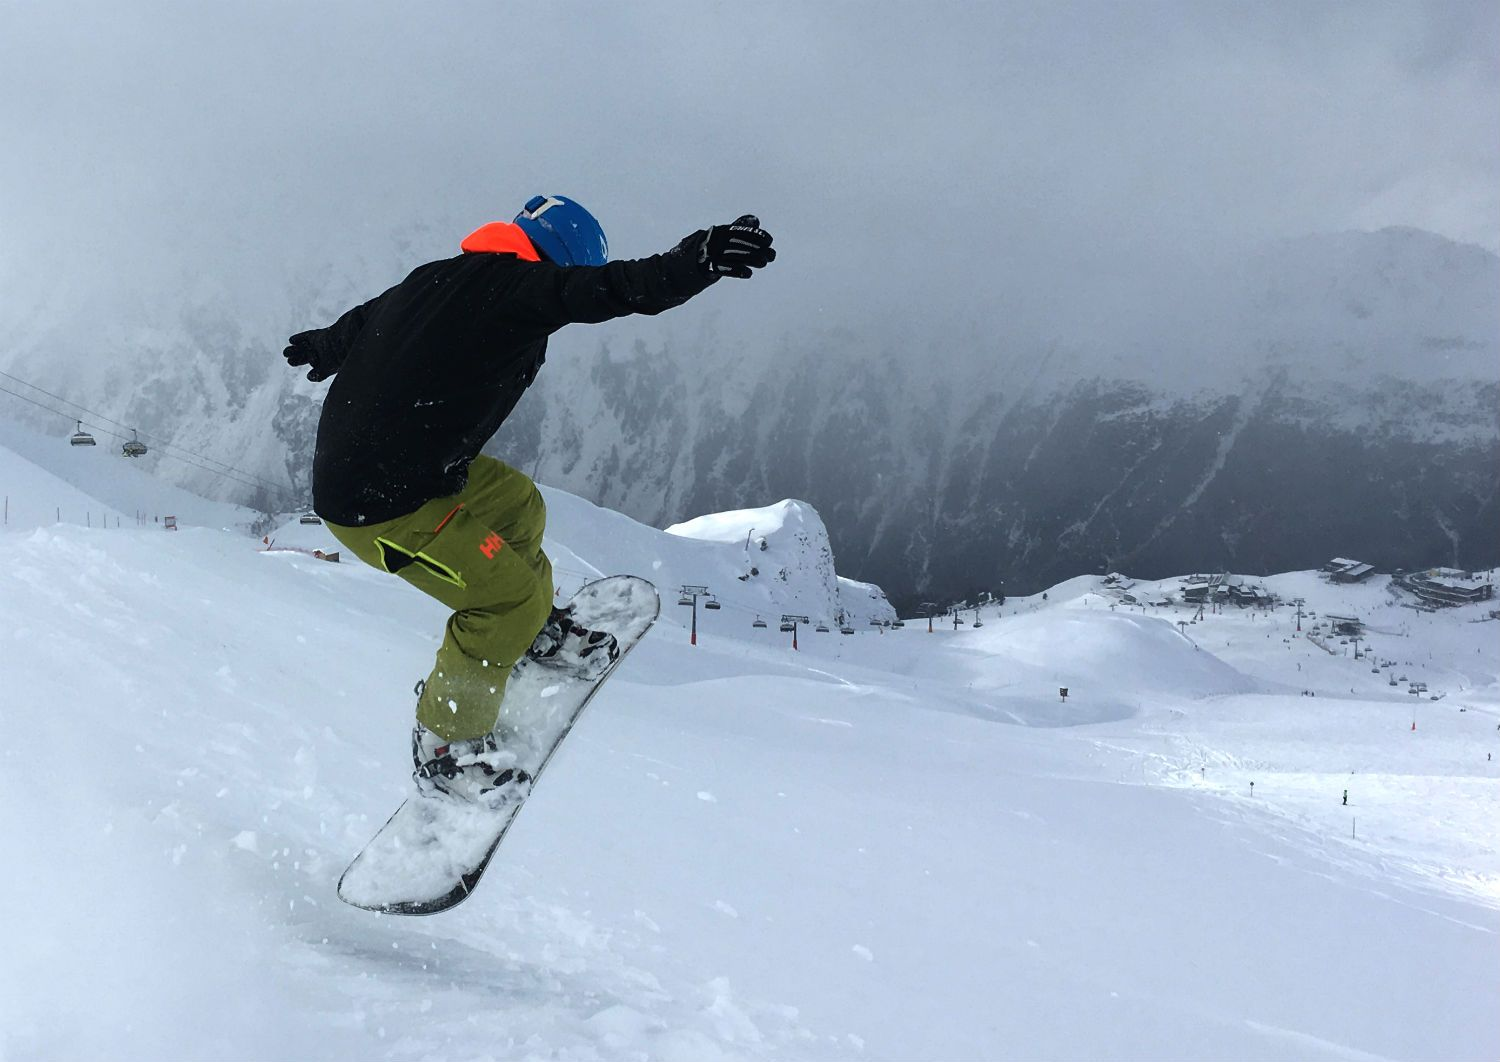 snowboarder in powder (With images) North conway